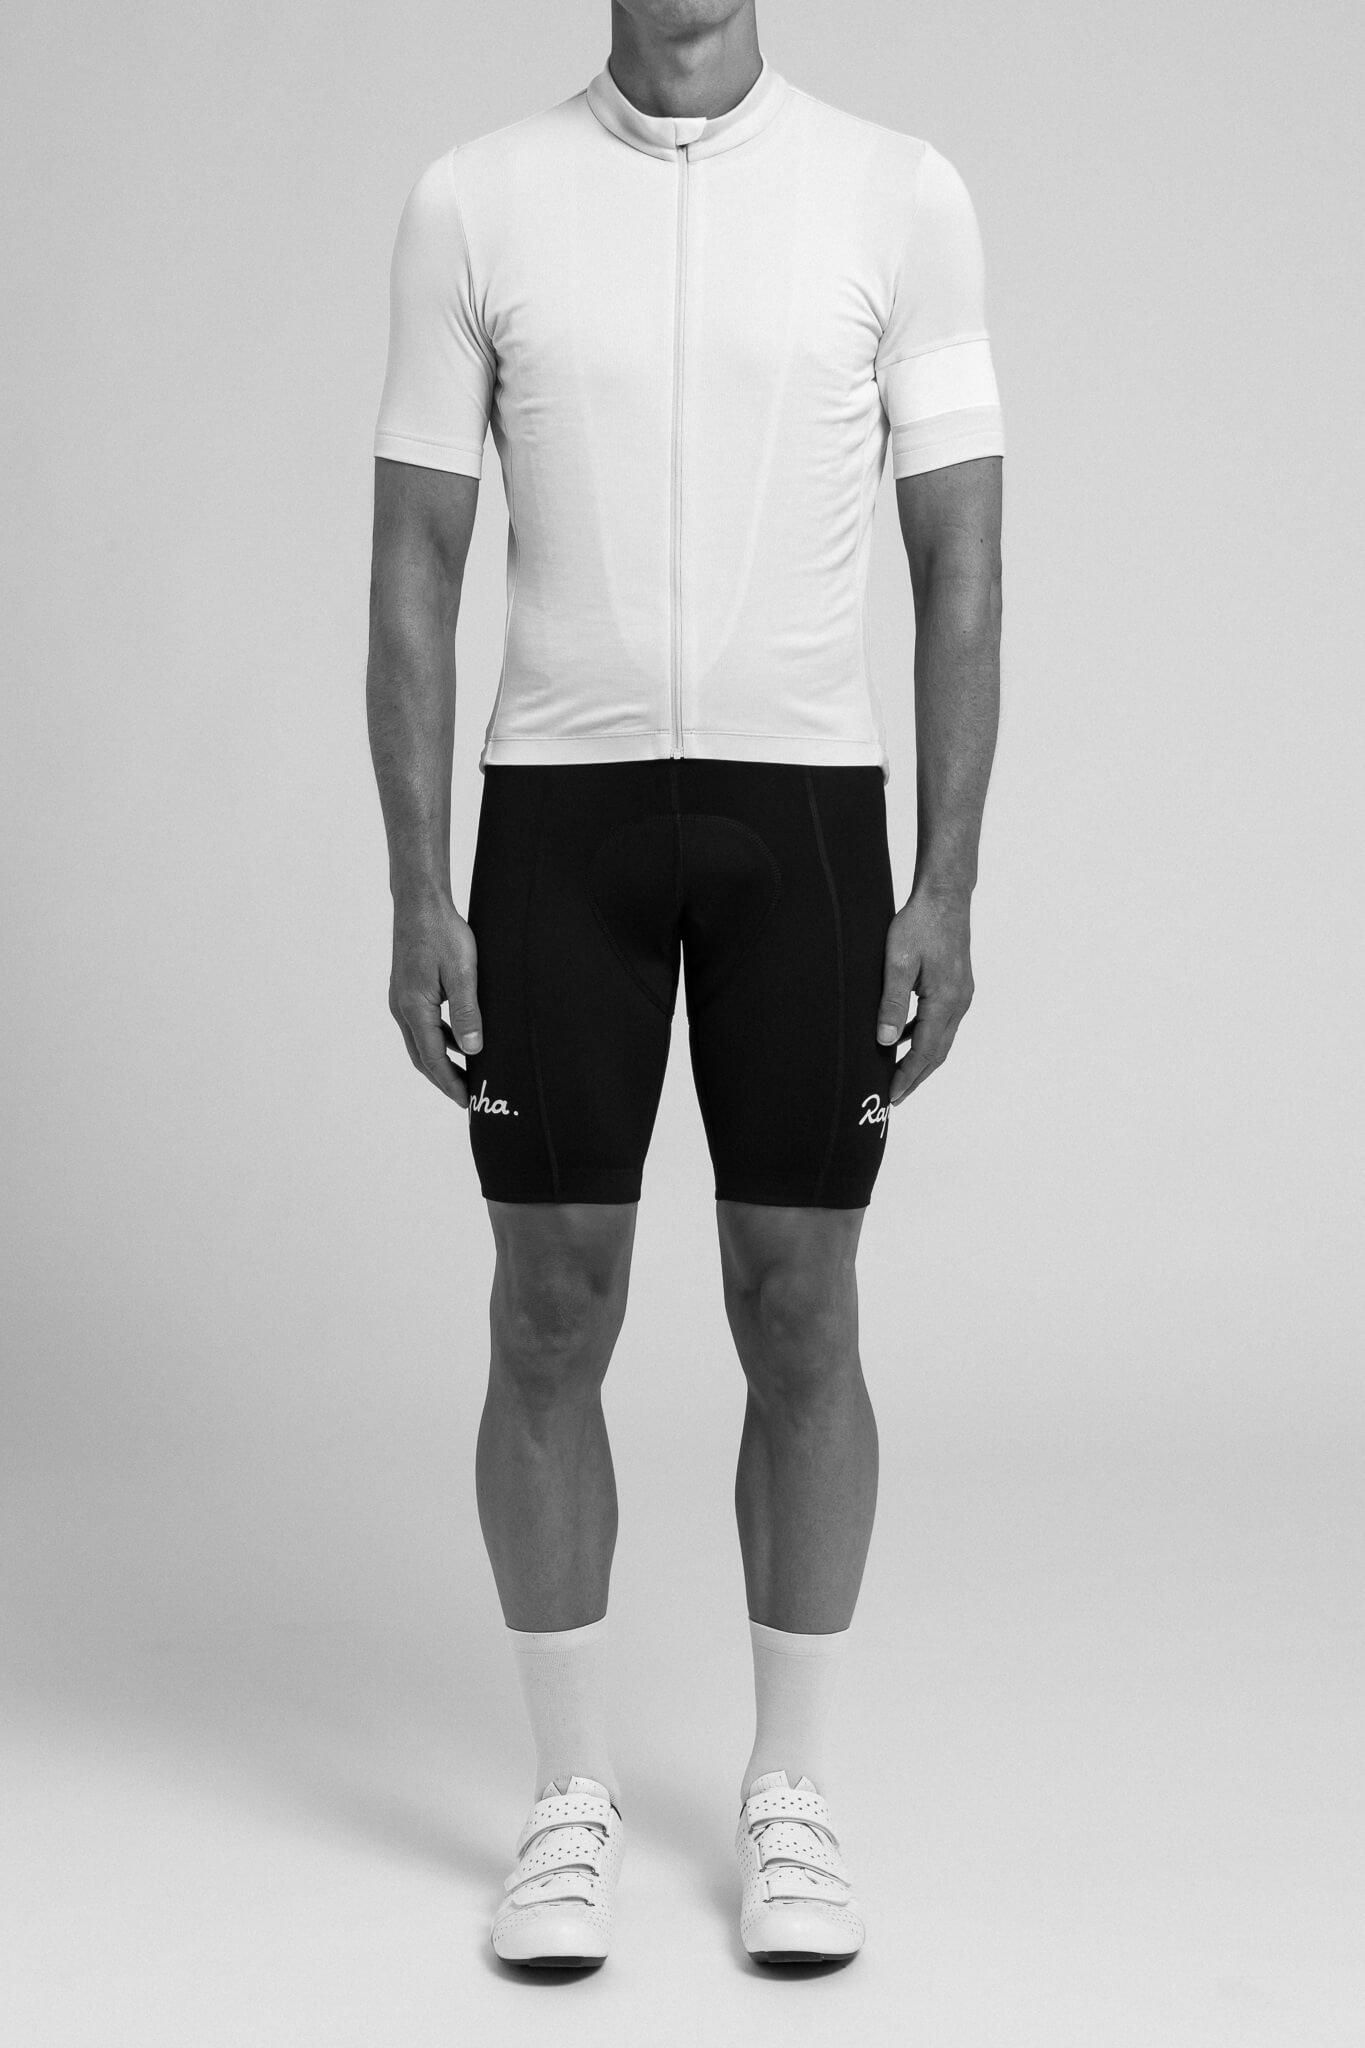 Ef Pro Cycling Pro Team Training Jersey Men S Rapha Training Jersey Is Lightweight And Relaxed Fit For The Best Comfort While Cycling Rapha